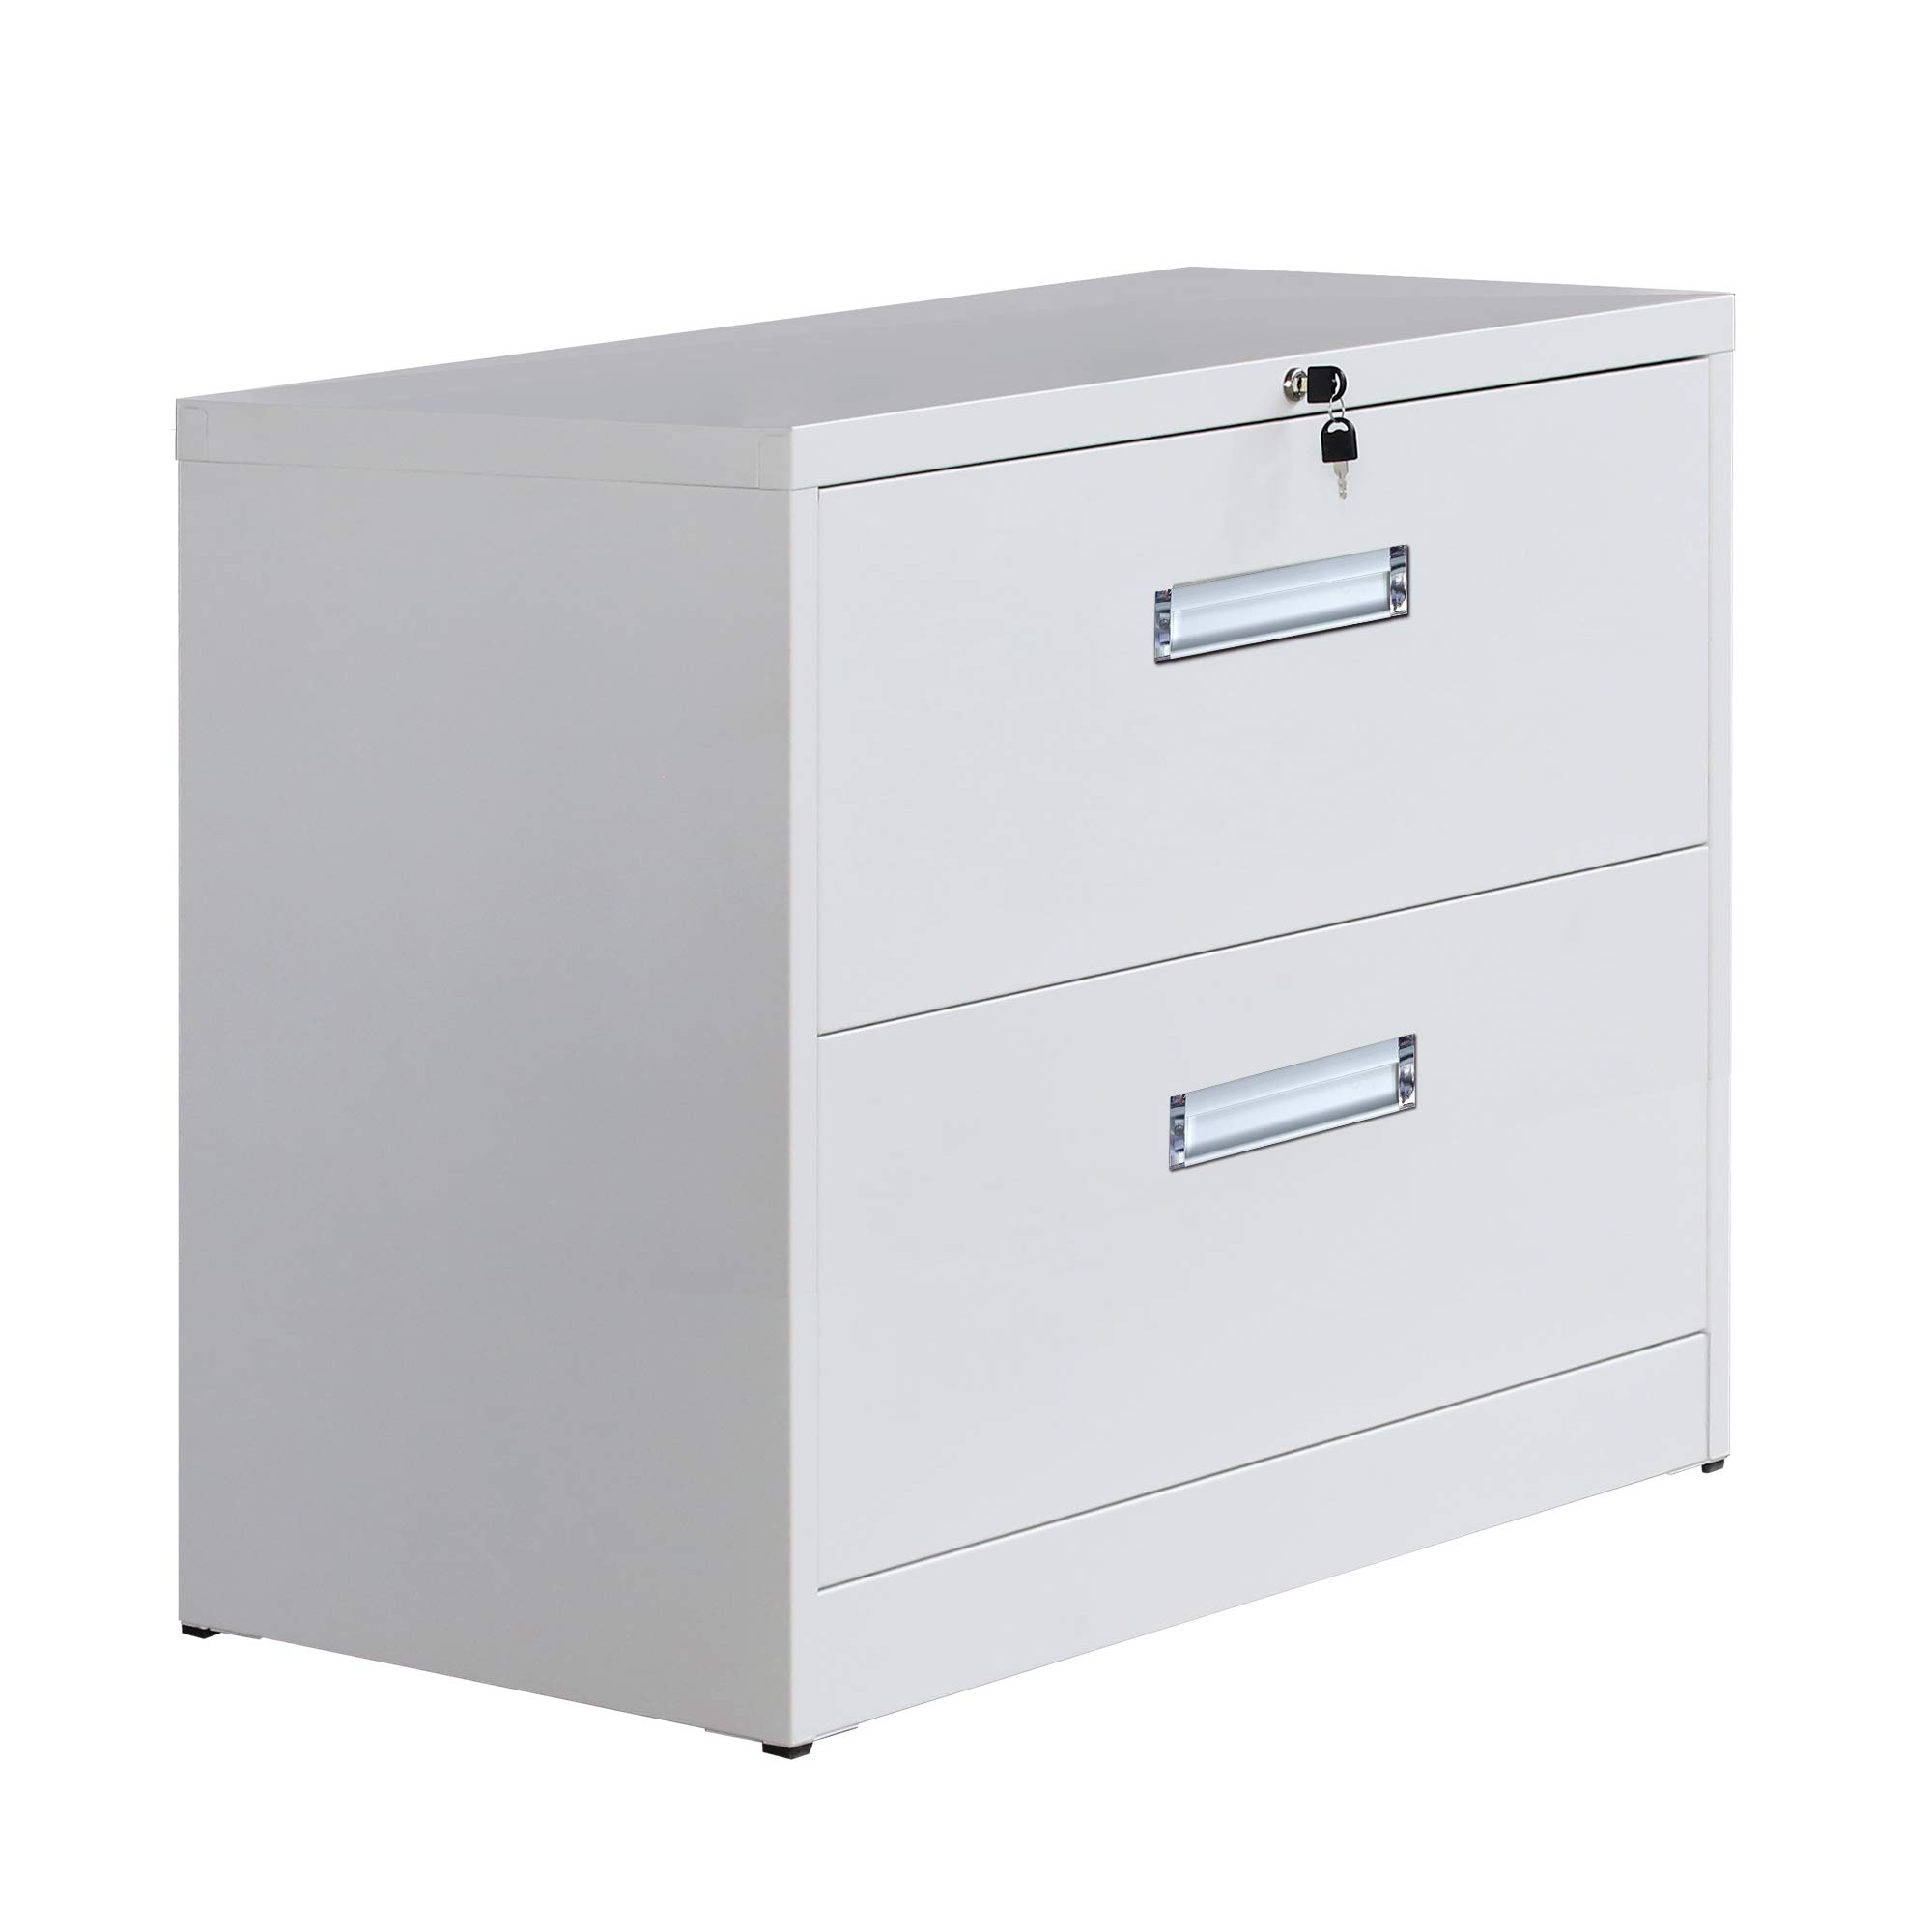 Lateral File Cabinet 2/3 Drawers Metal Vertical Lockable File Cabinet with Hanging File Frame for Legal & Business File